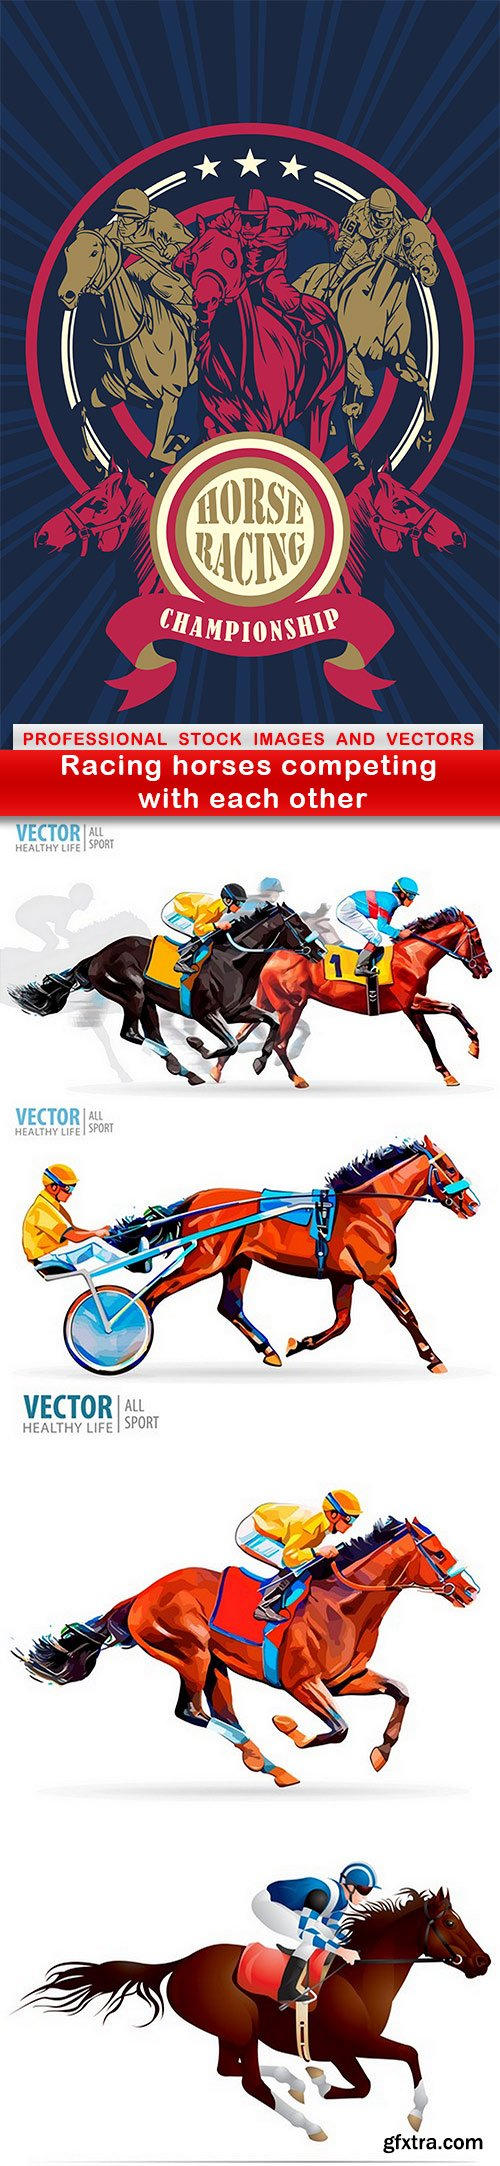 Racing horses competing with each other - 5 EPS